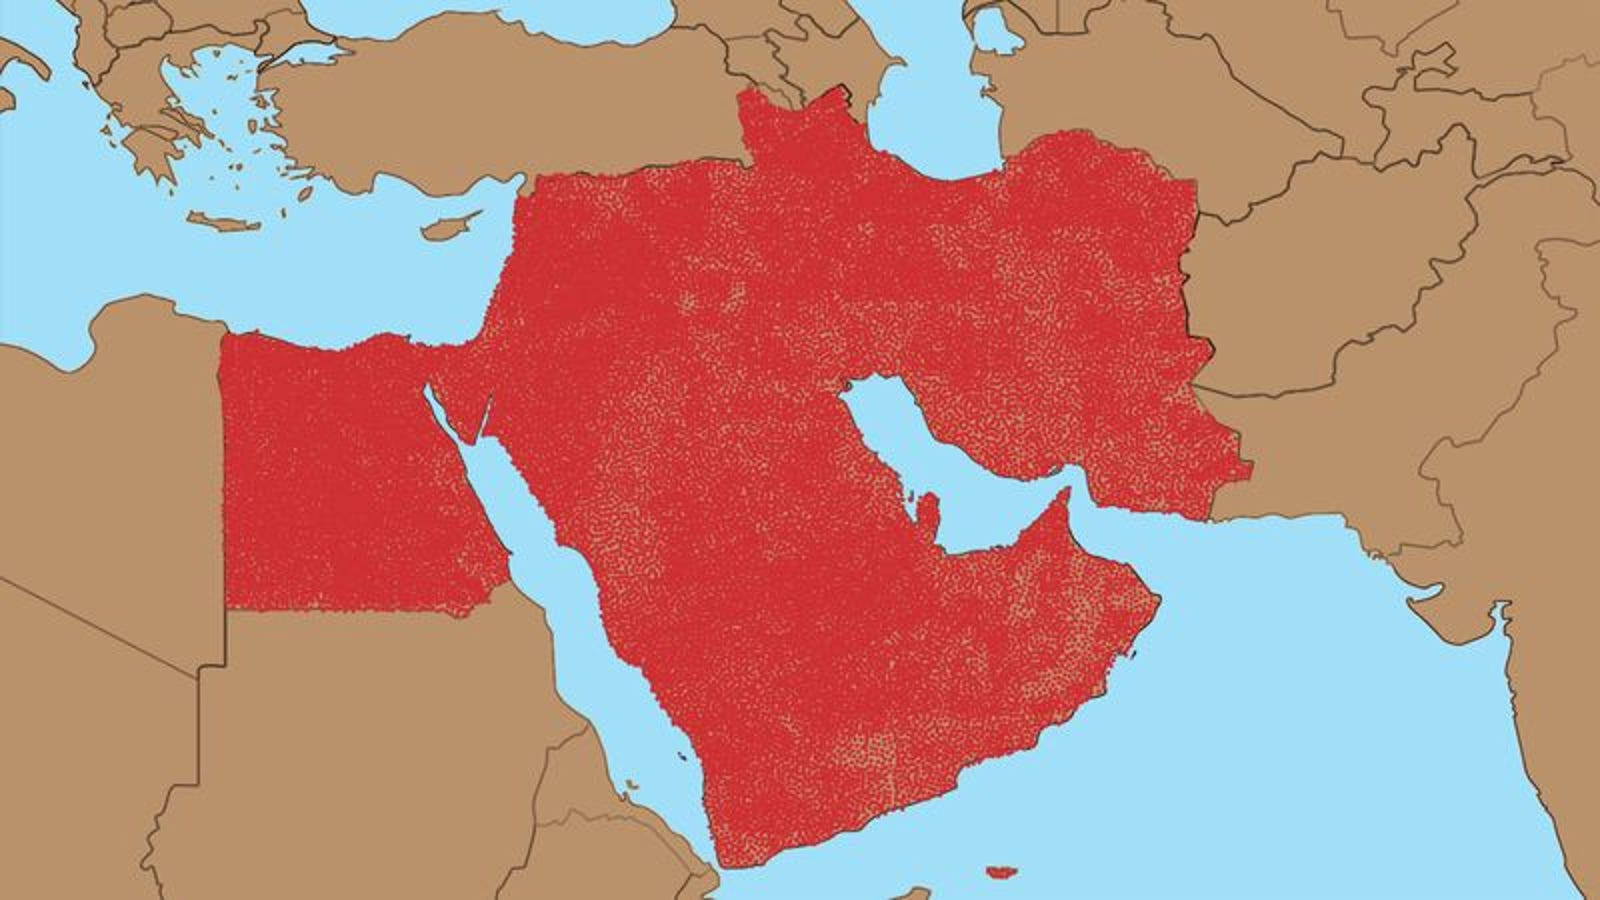 Everyone In Middle East Given Own Country In 317,000,000-State Solution